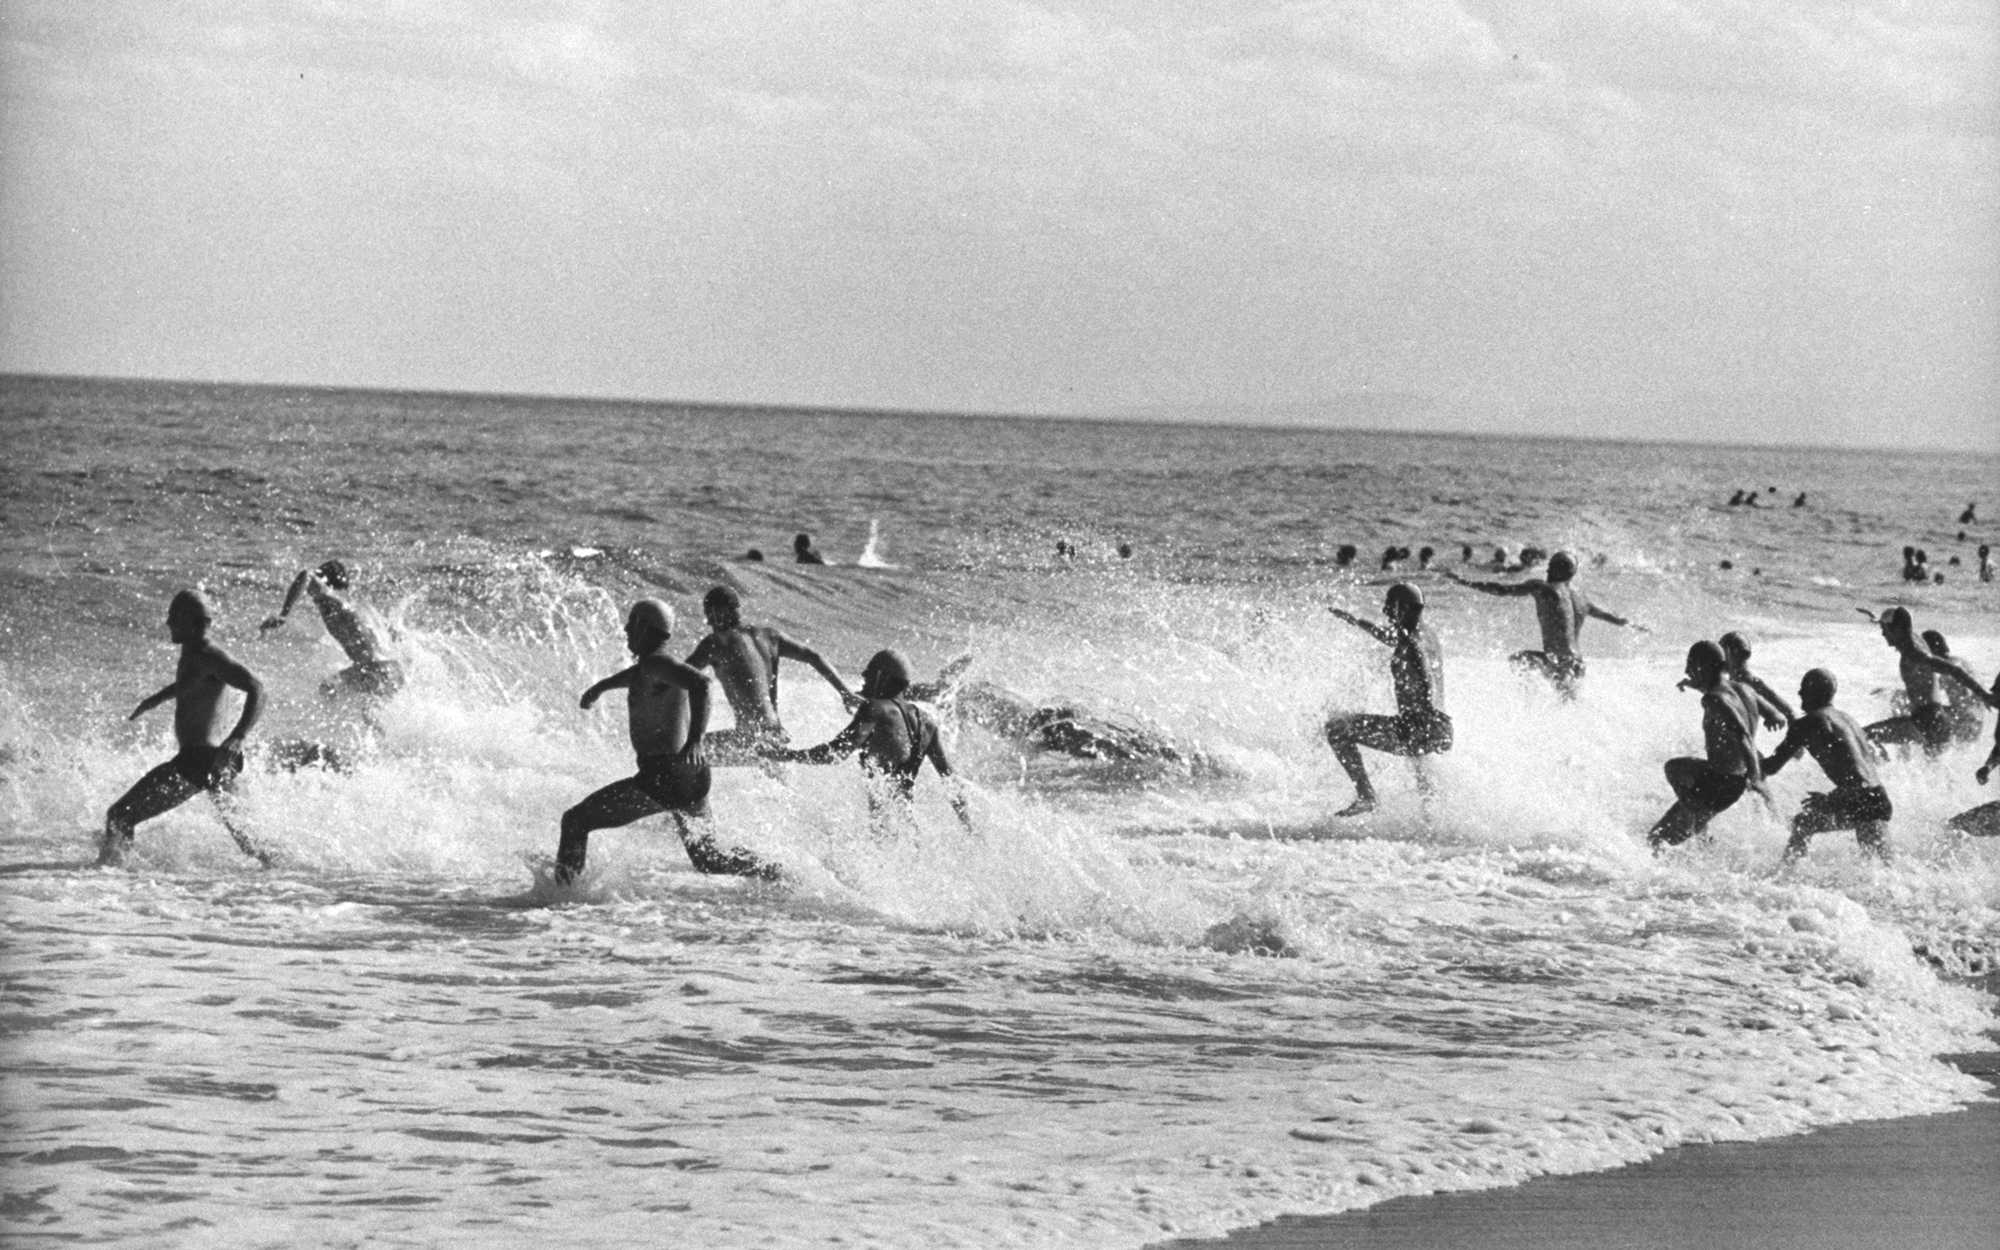 Vintage Beach Photographs from the Time & Life Pictures Collection